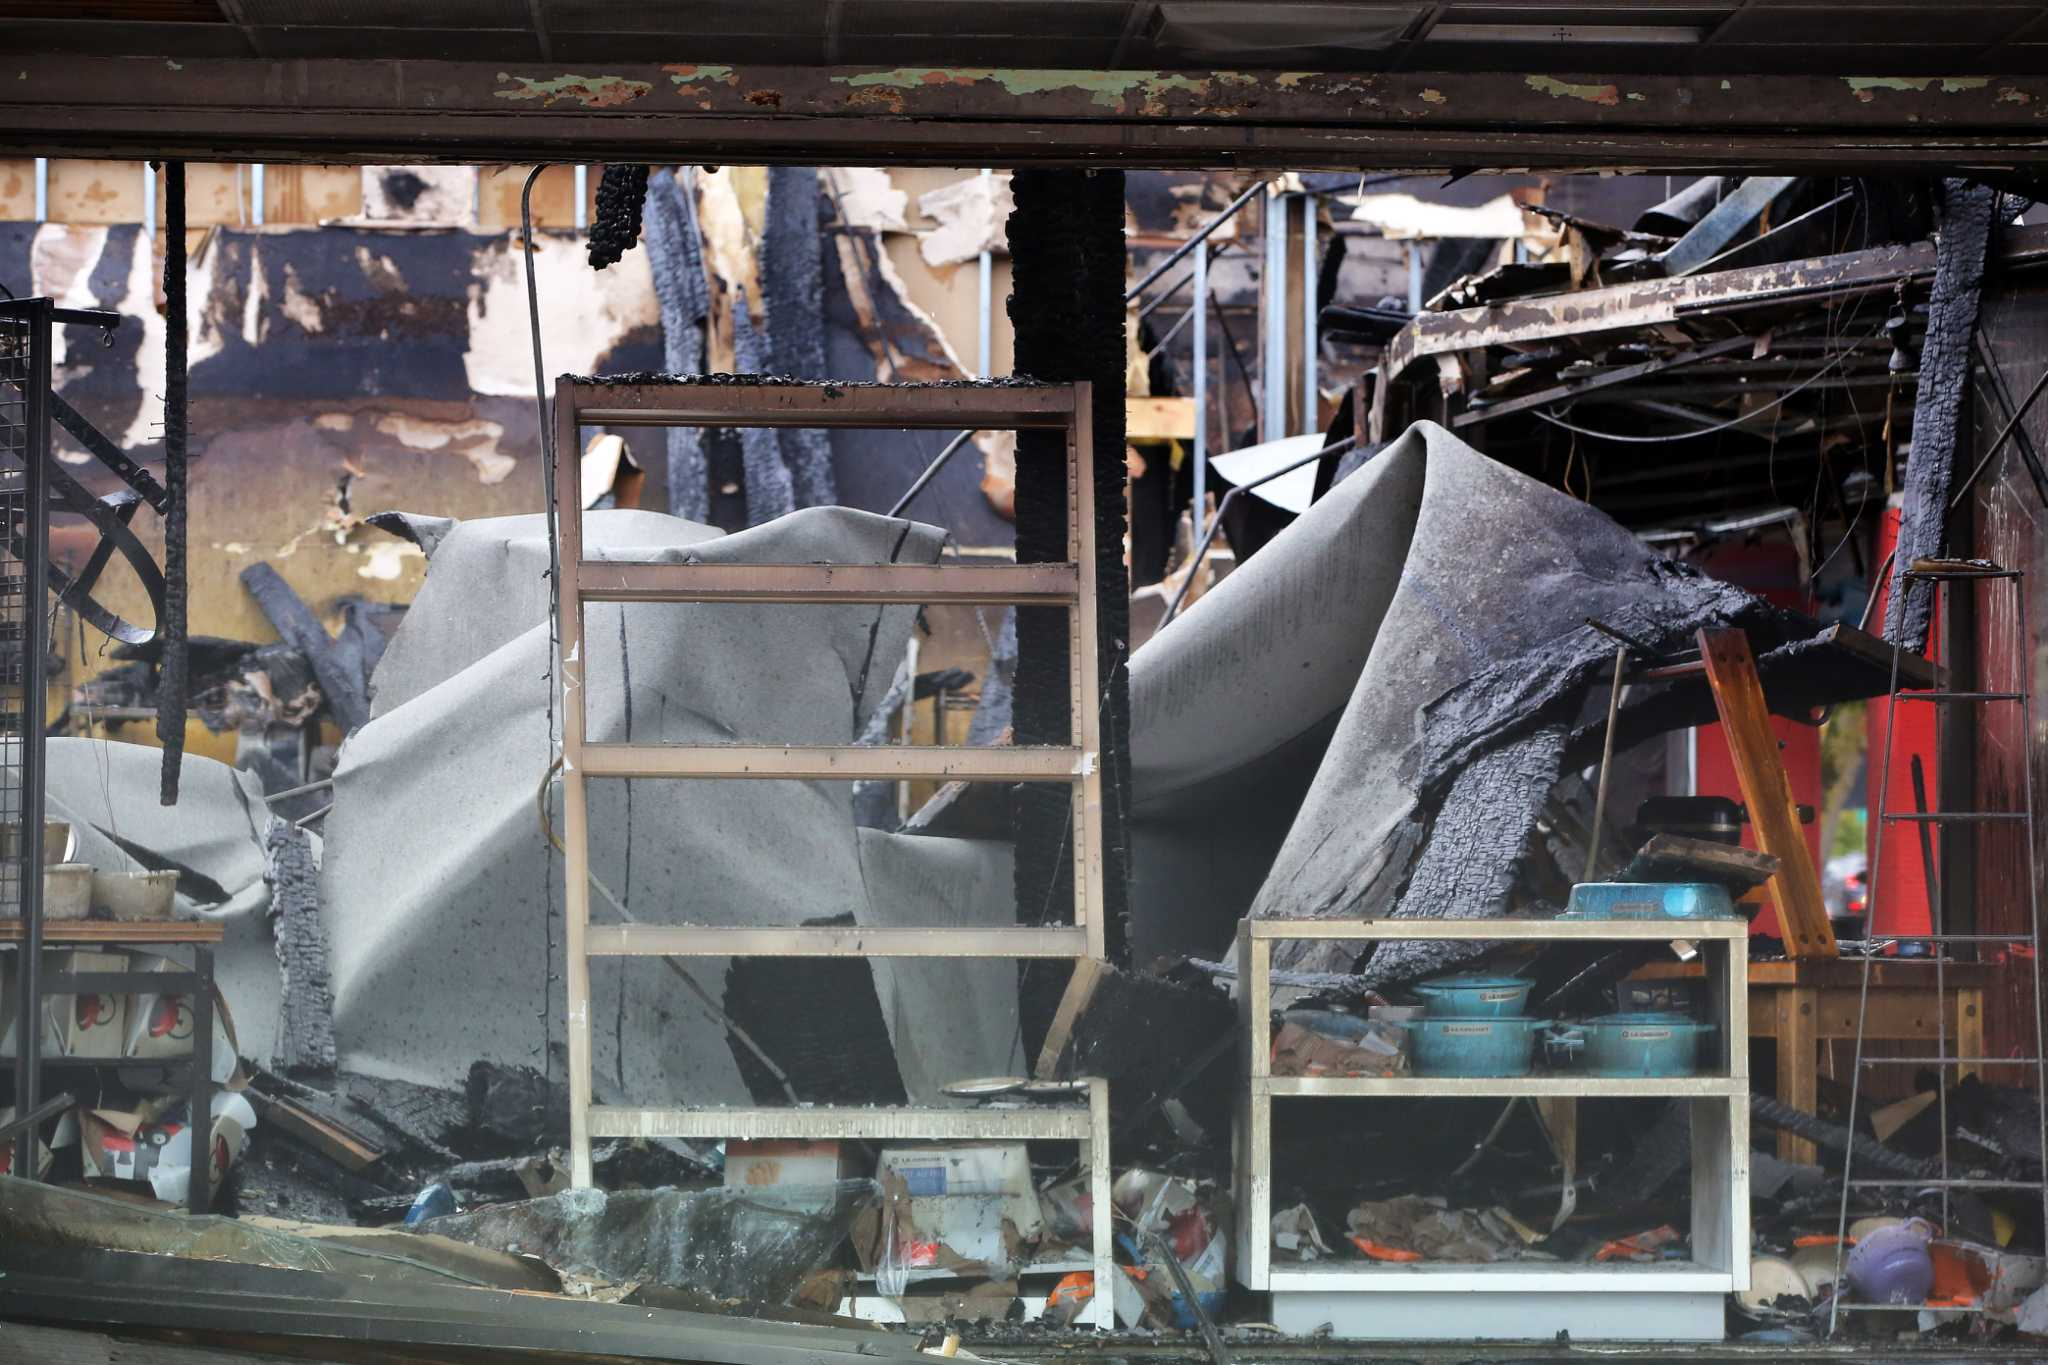 Ballard retail building must come down due to fire damage, city orders